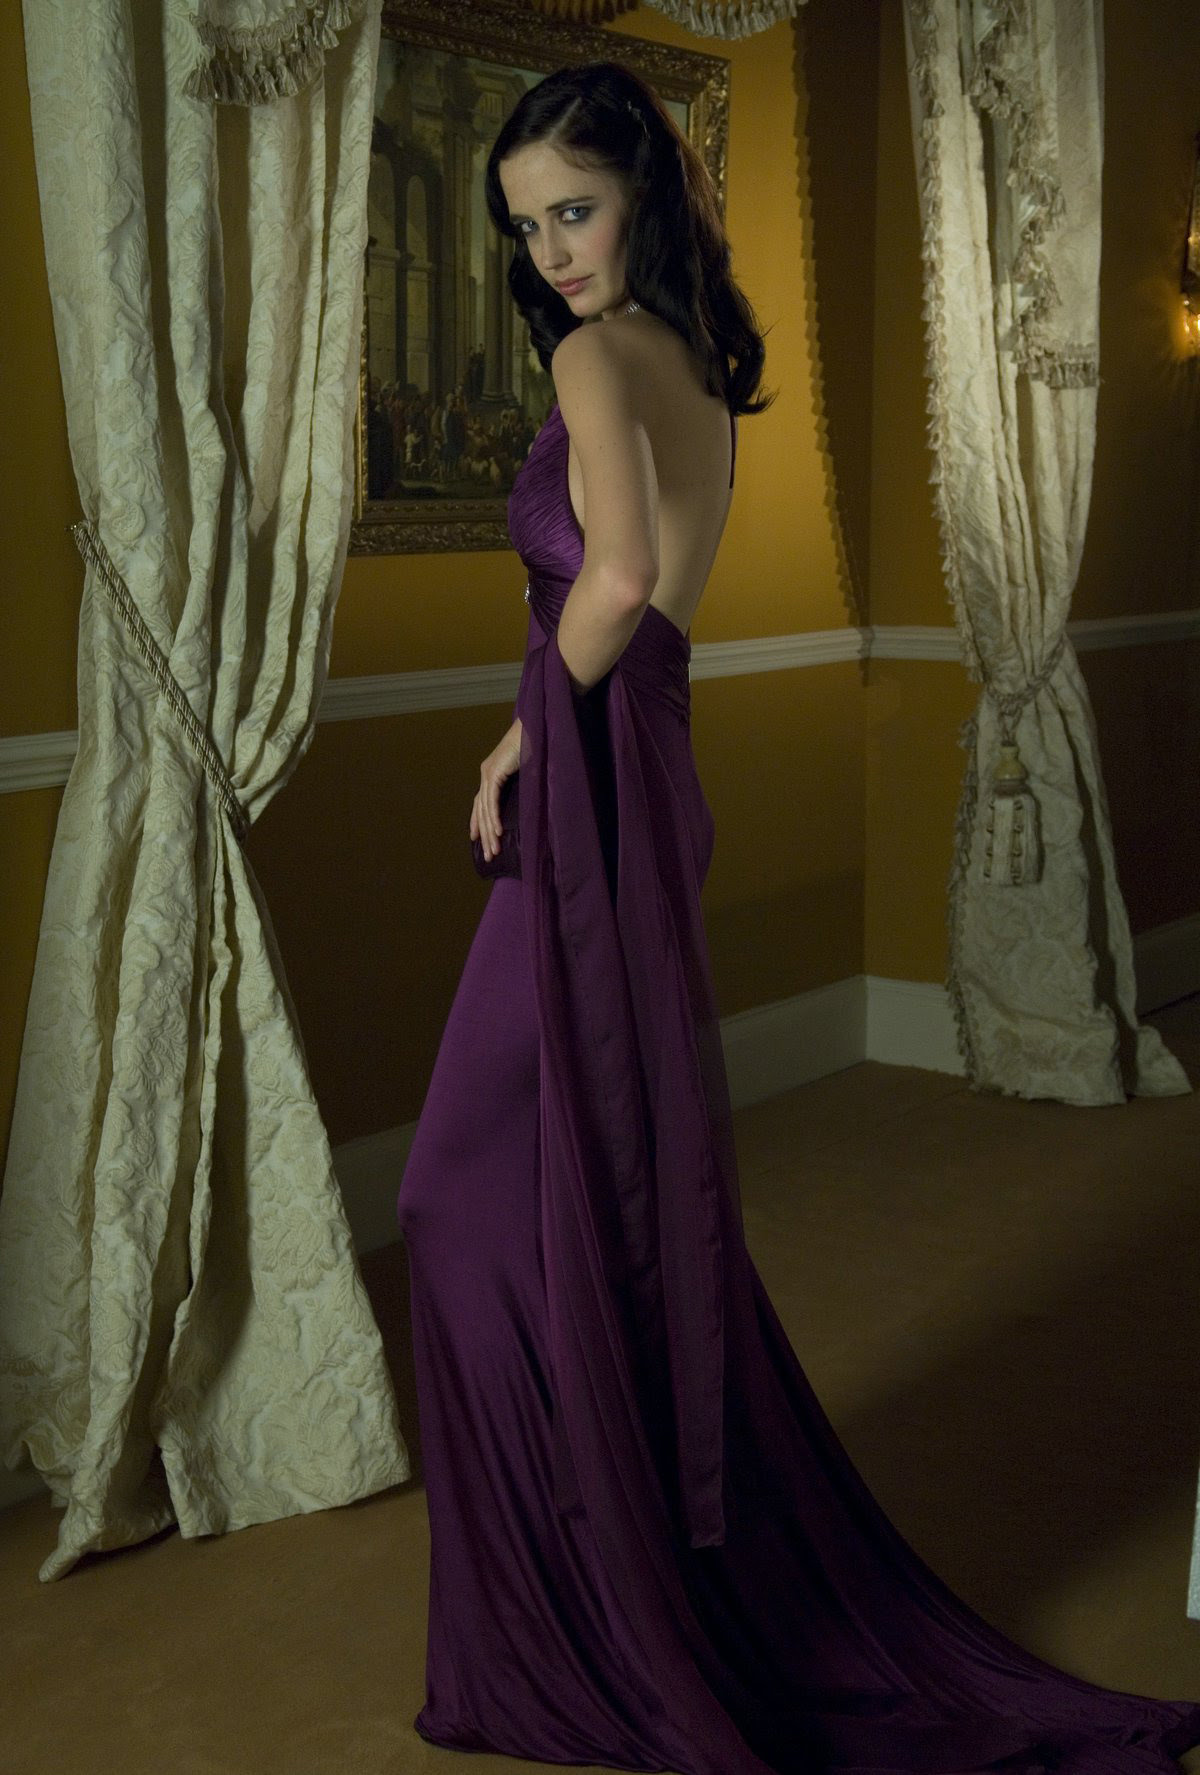 Celebrities, Movies and Games: Bond Girl: Eva Green as